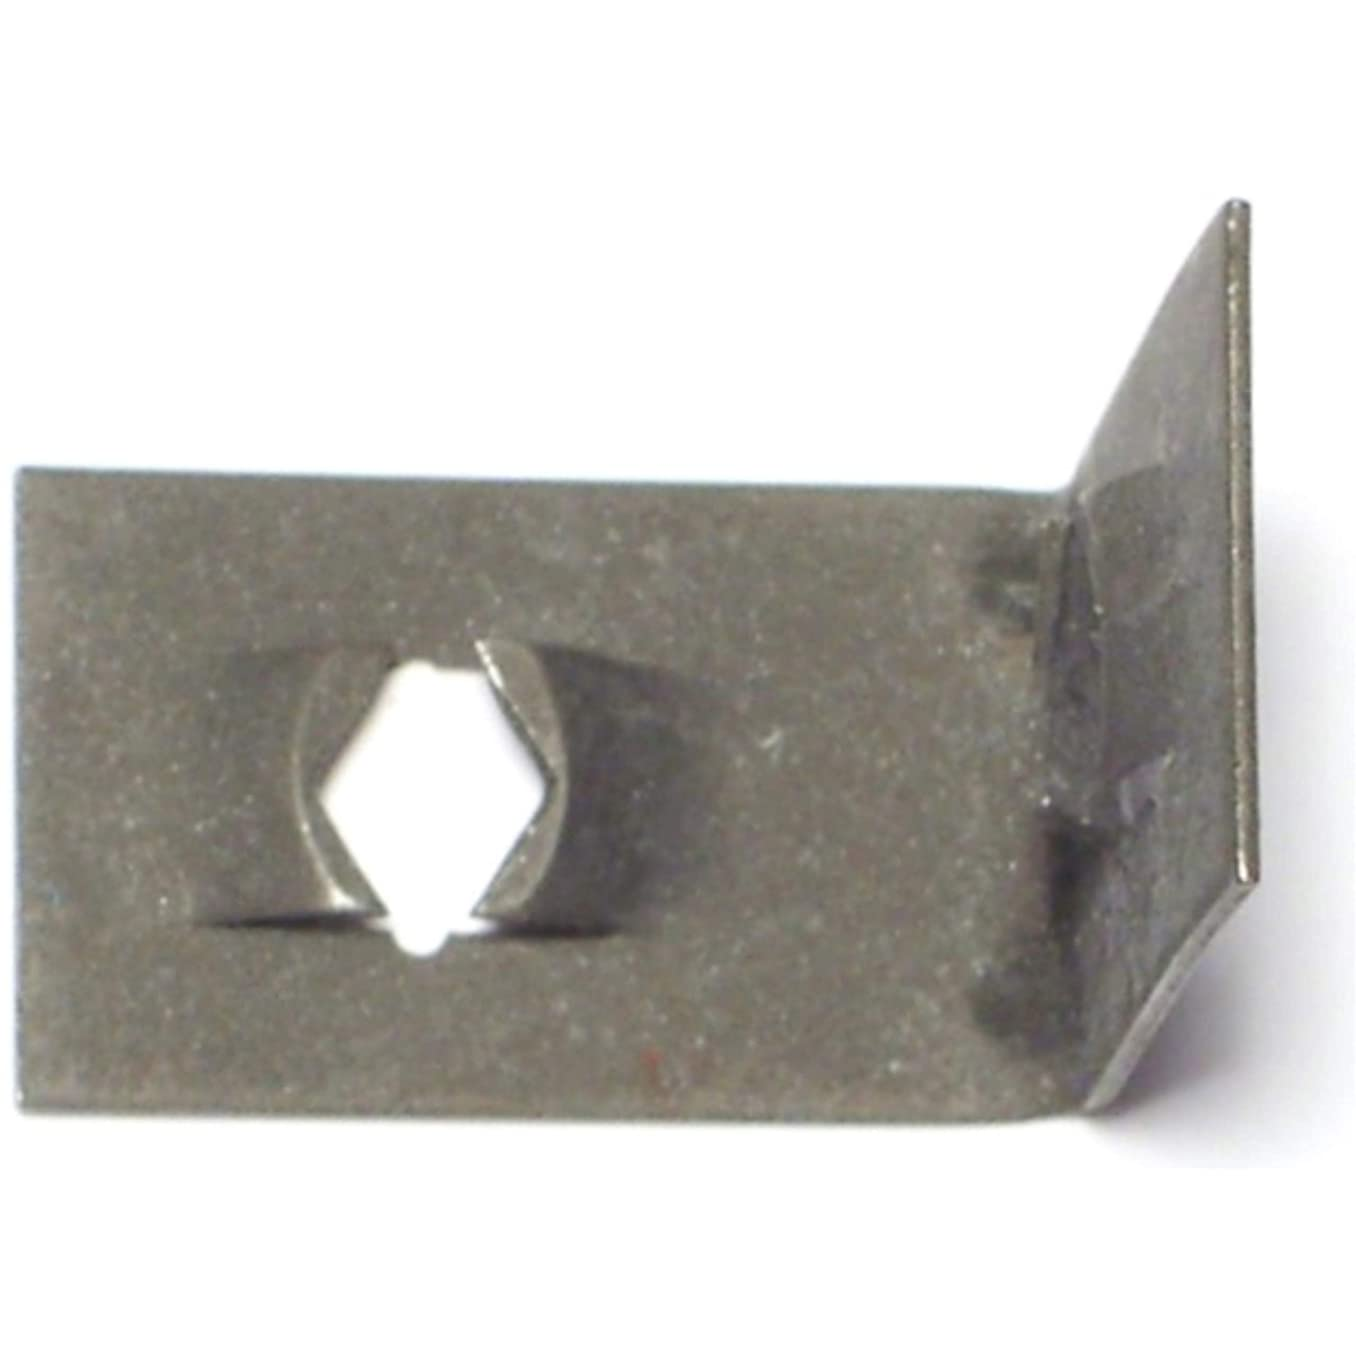 Hard-to-Find Fastener 014973324339 Angle Speed Nuts for Machine Screws, 10-24, Piece-12